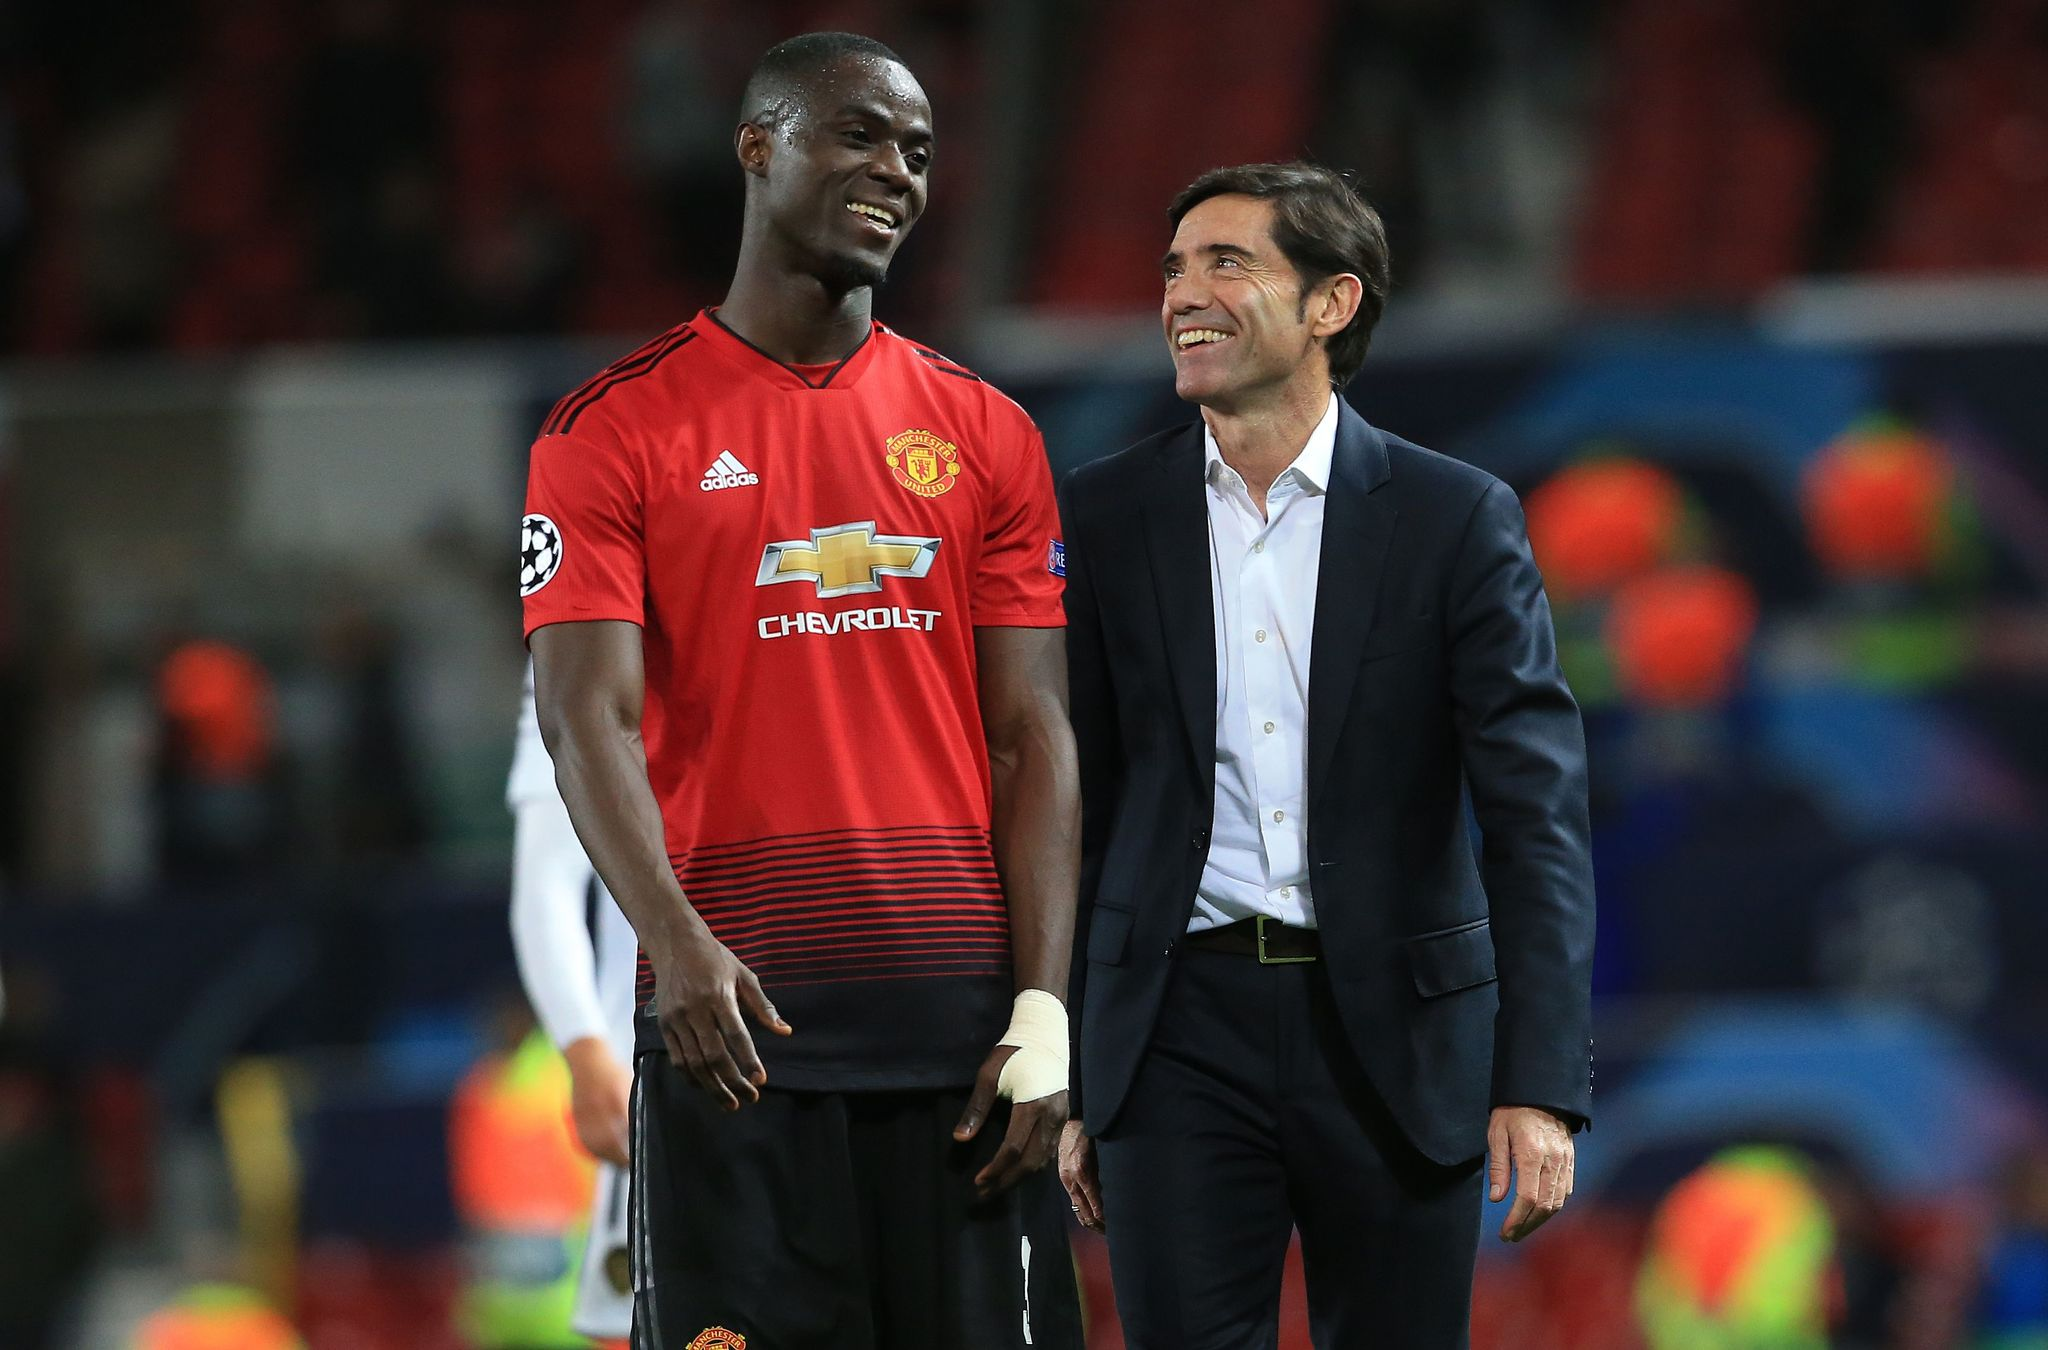 Valencias Spanish coach Marcelino Garcia Toral (R) and Manchester Uniteds Ivorian defender Eric <HIT>Bailly</HIT> react following the Champions League group H football match between Manchester United and Valencia at Old Trafford in Manchester, north west England, on October 2, 2018. - The match ended in a draw at 0-0. (Photo by Lindsey PARNABY / AFP)